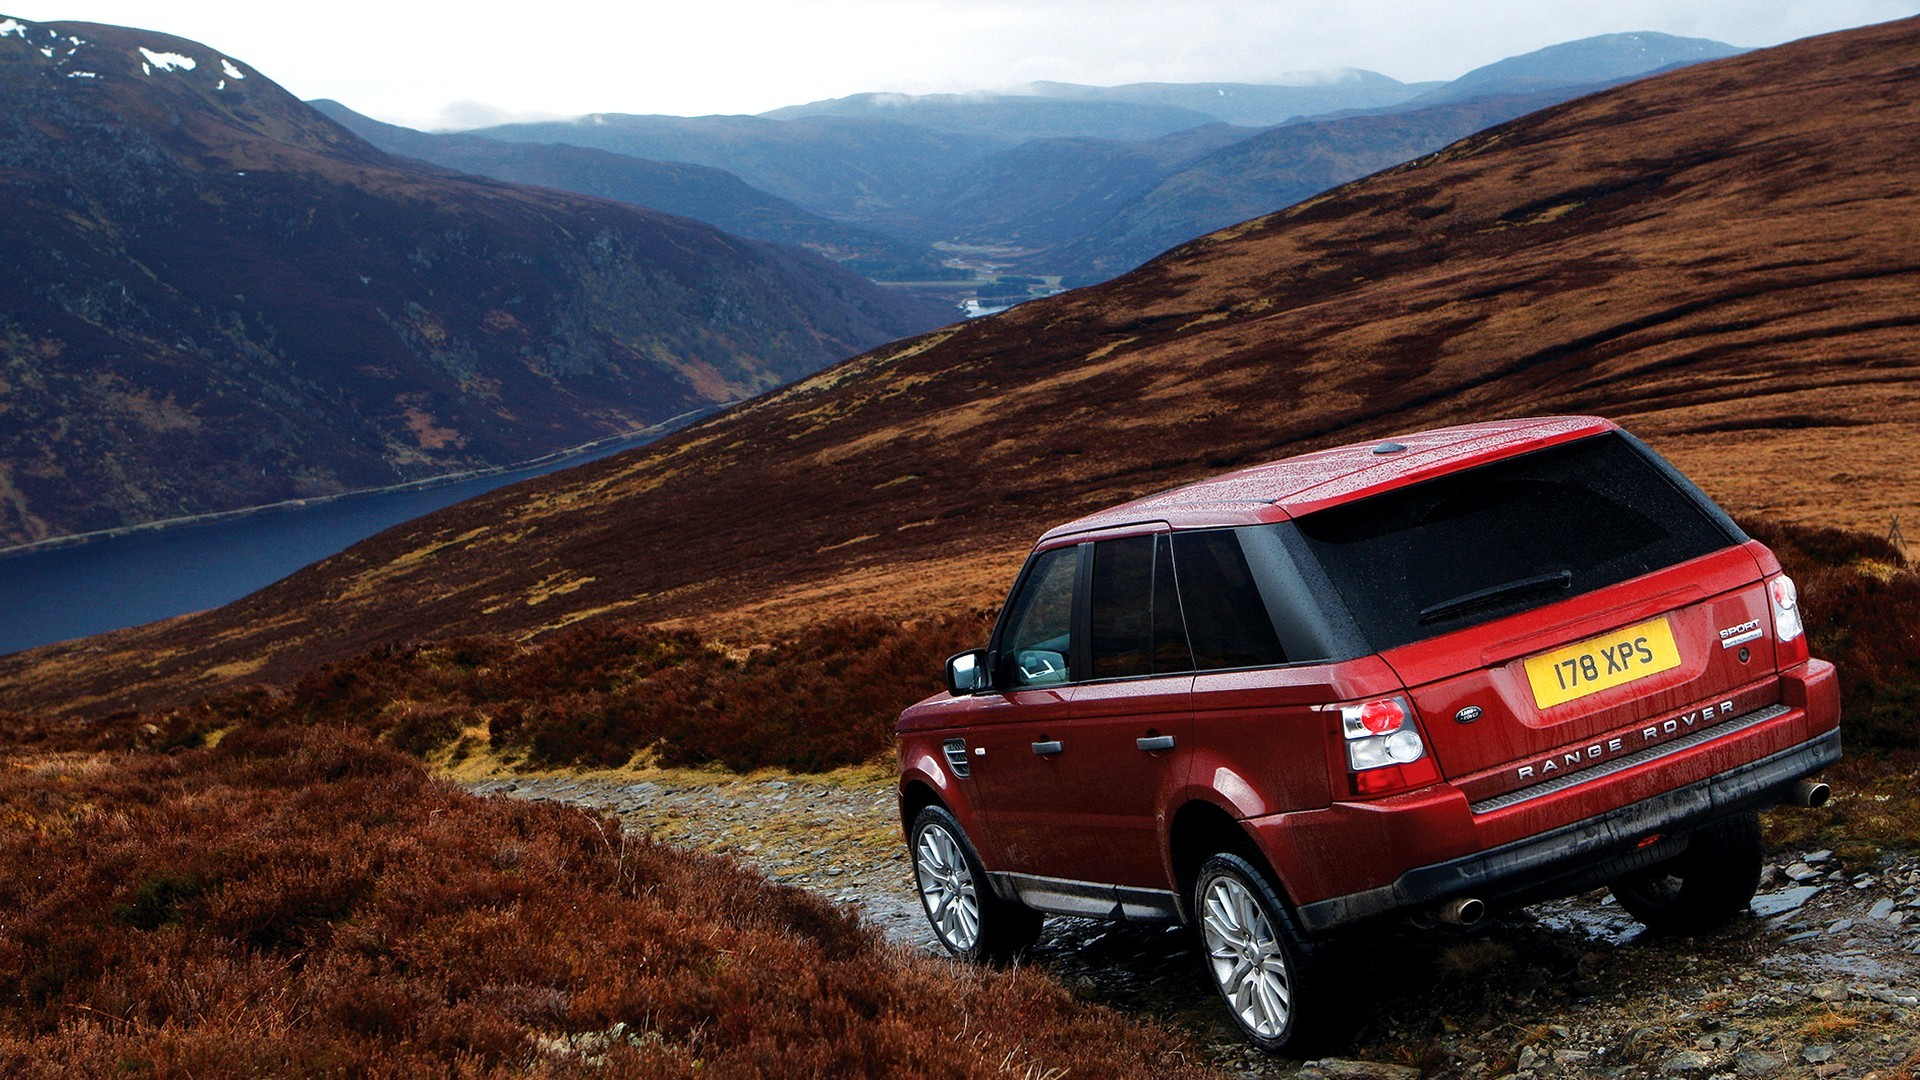 Range Rover HD Wallpaper